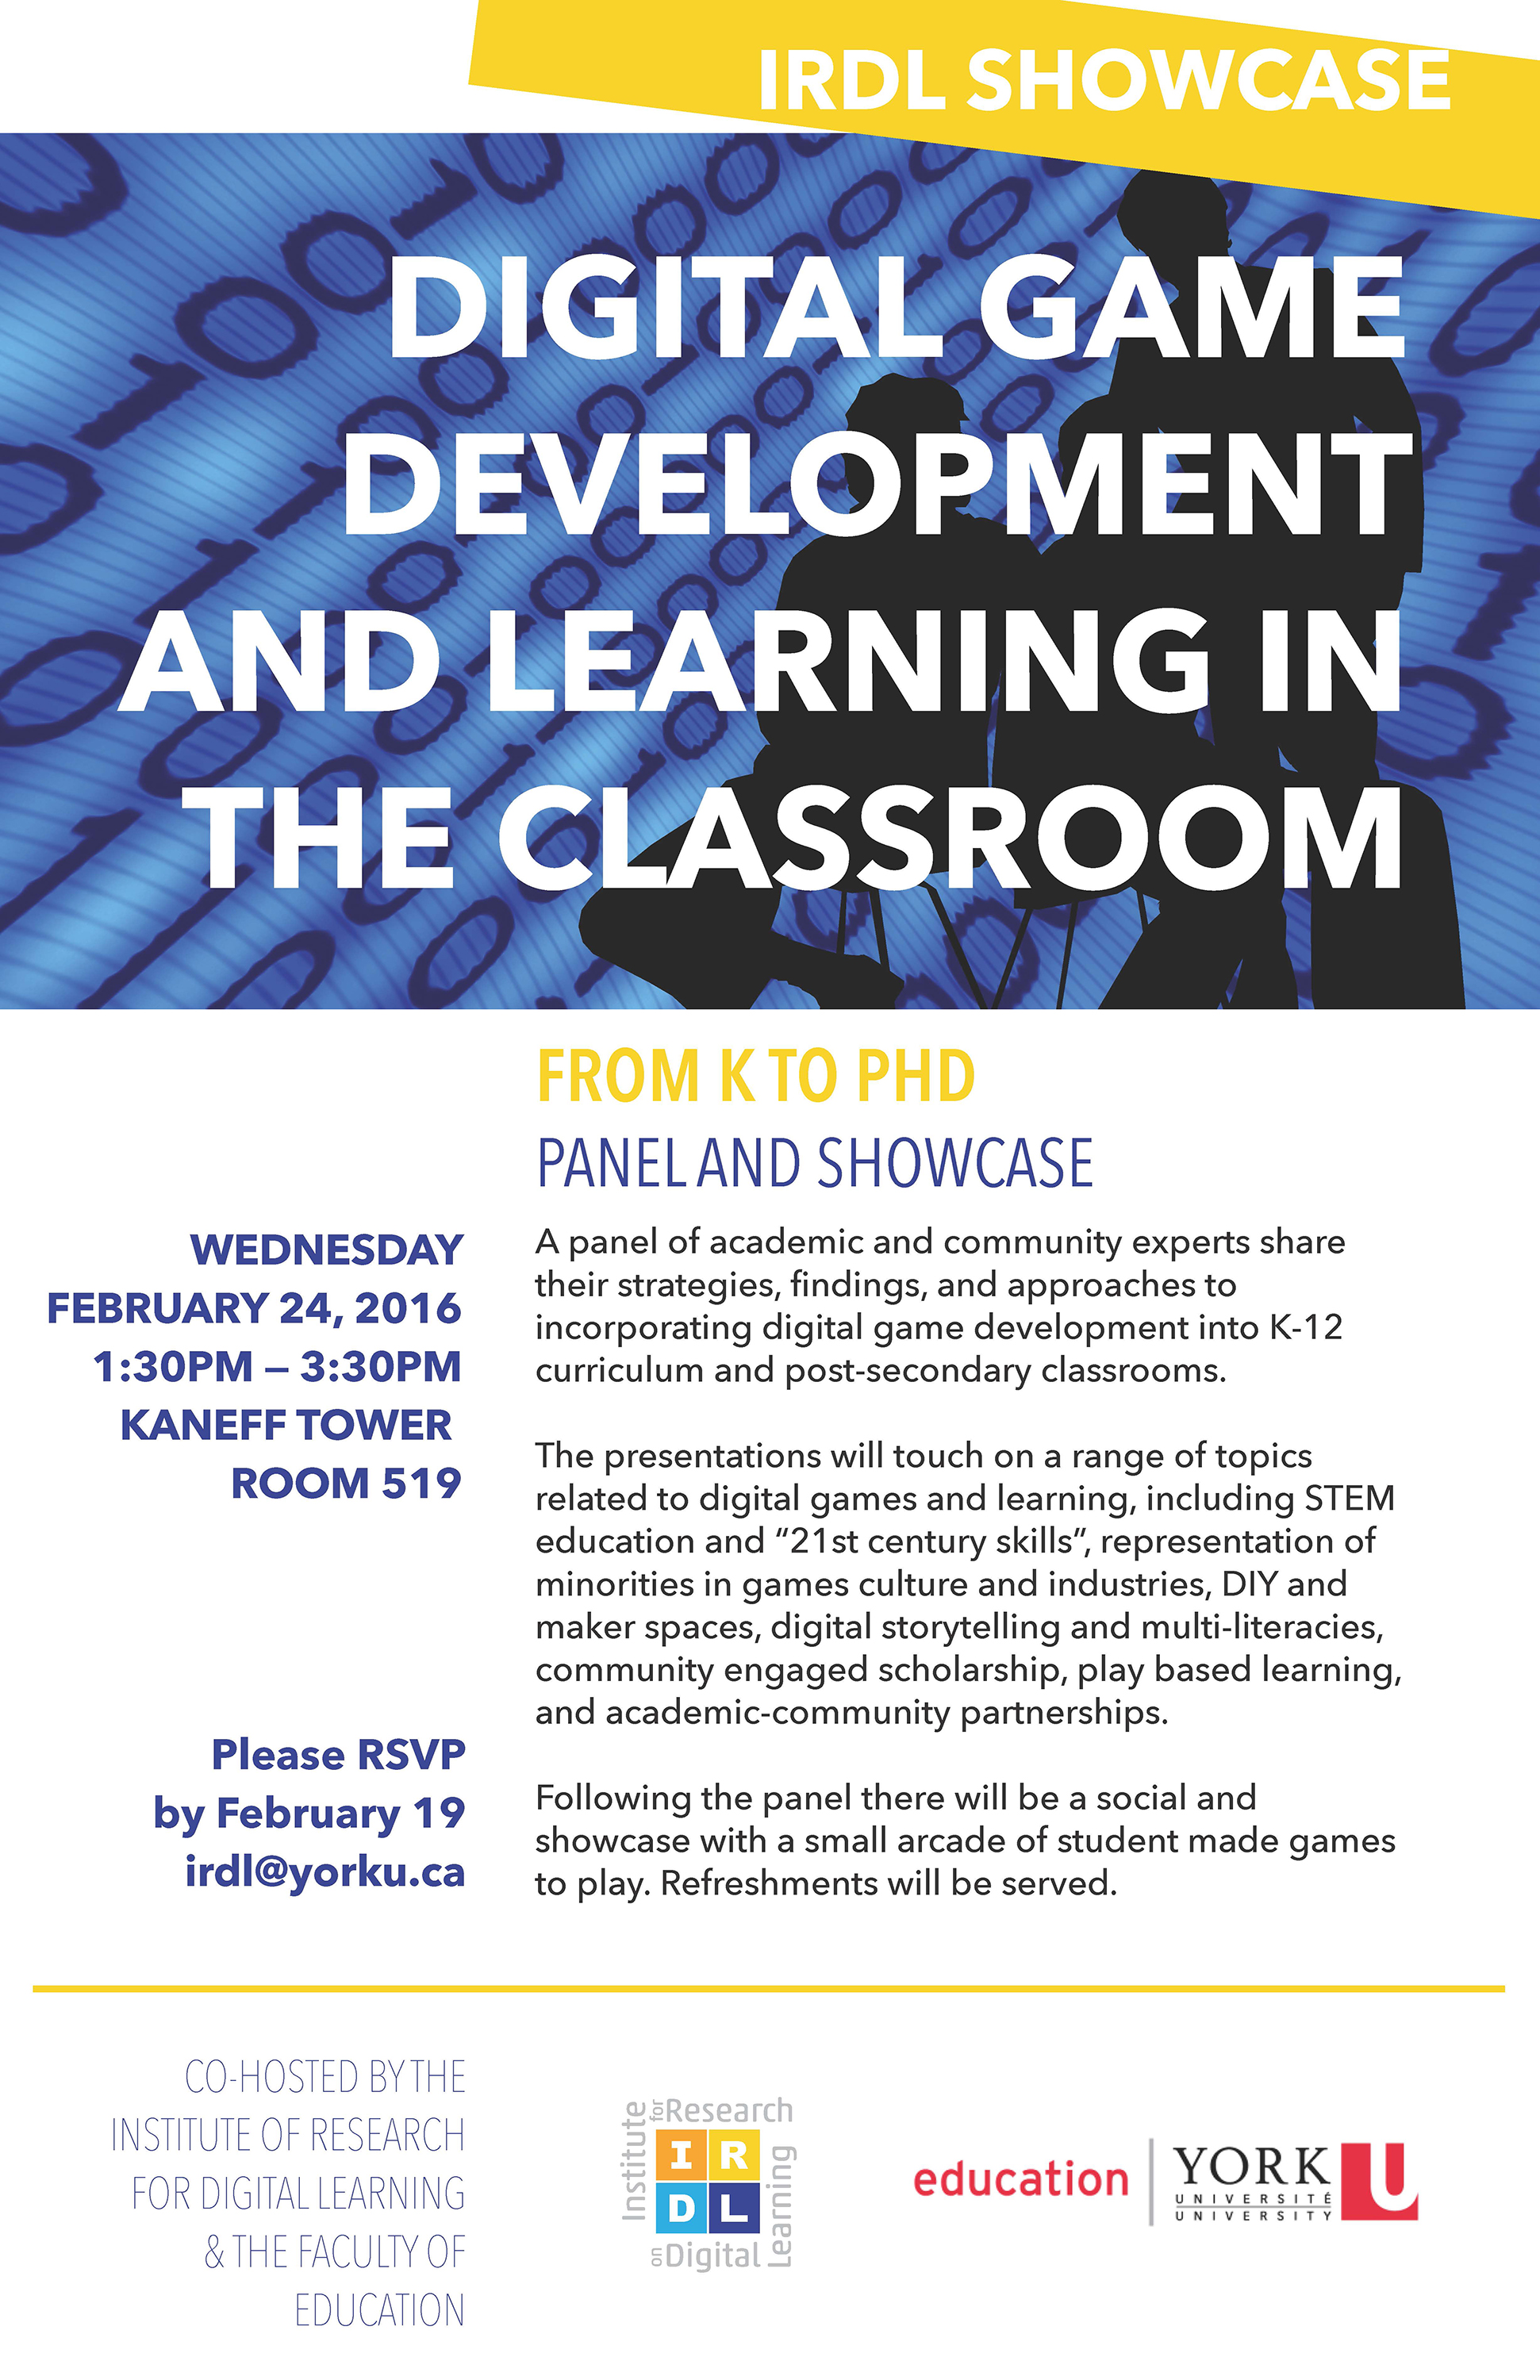 Digital Game Development and Learning in the Classroom, From K to PhD